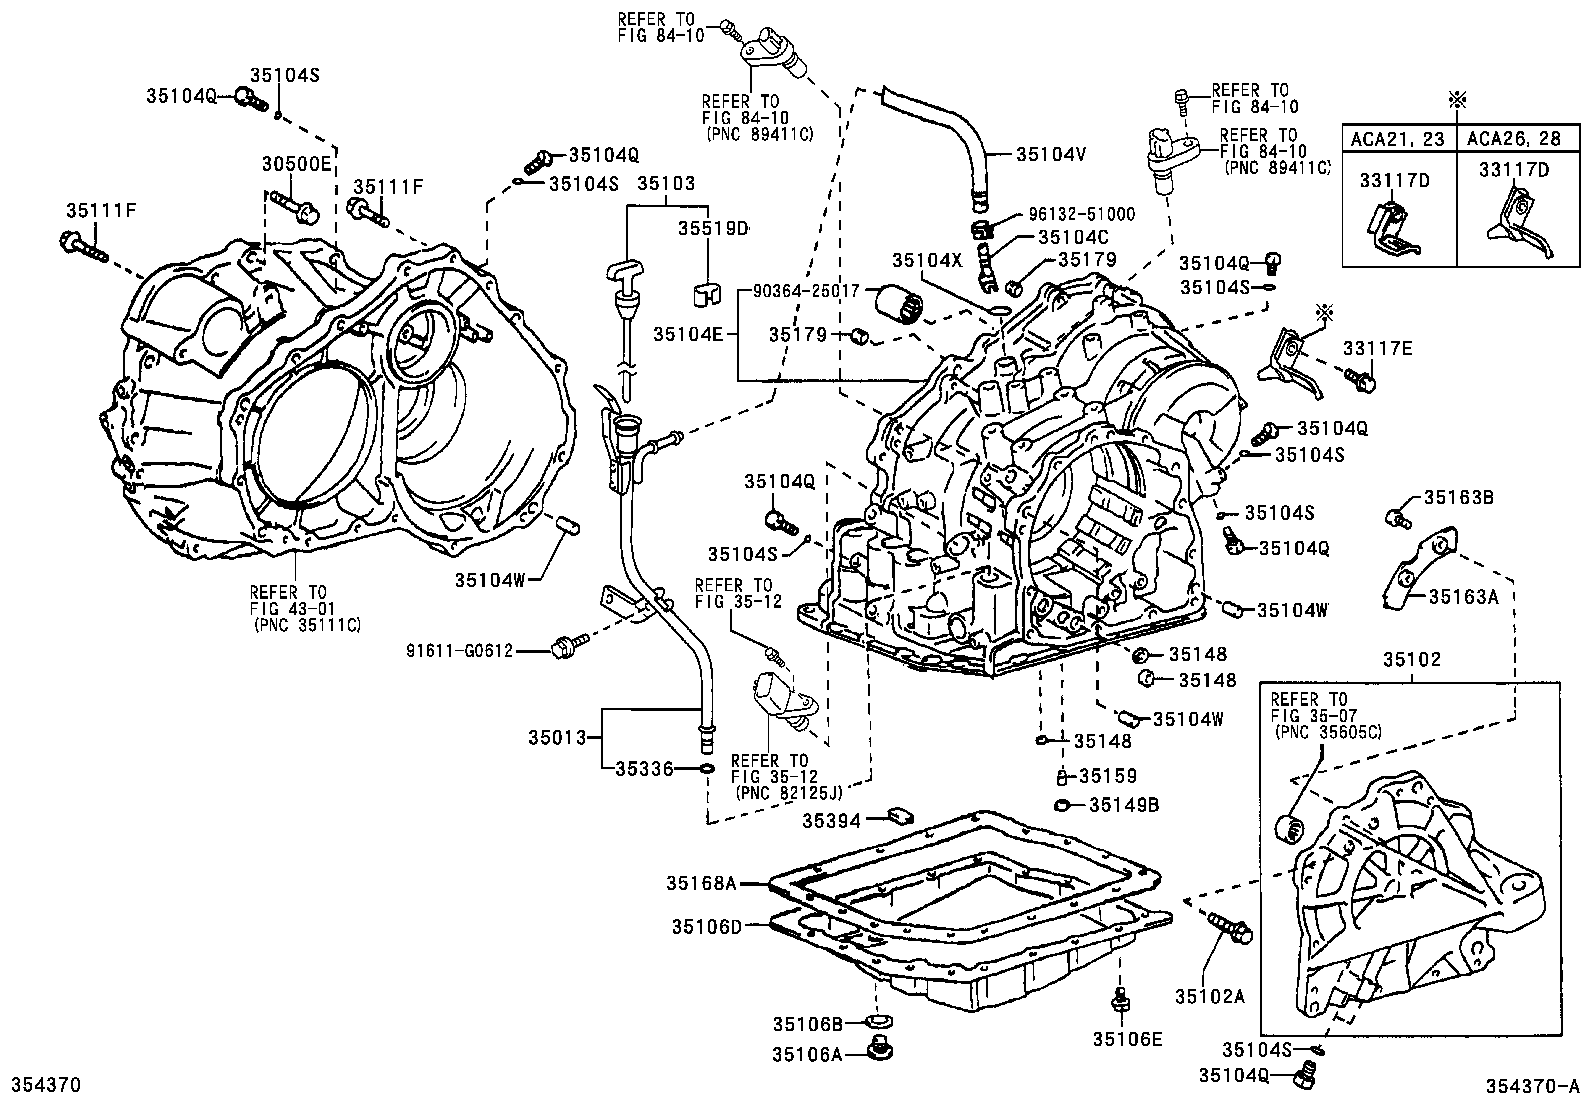 2011 Rav4 Engine Diagram - Wiring Diagram Schema  Rav Wiring Diagram on 2002 rav4 serpentine belt diagram, 1998 rav4 wiring diagram, 2002 rav4 exhaust system diagram,